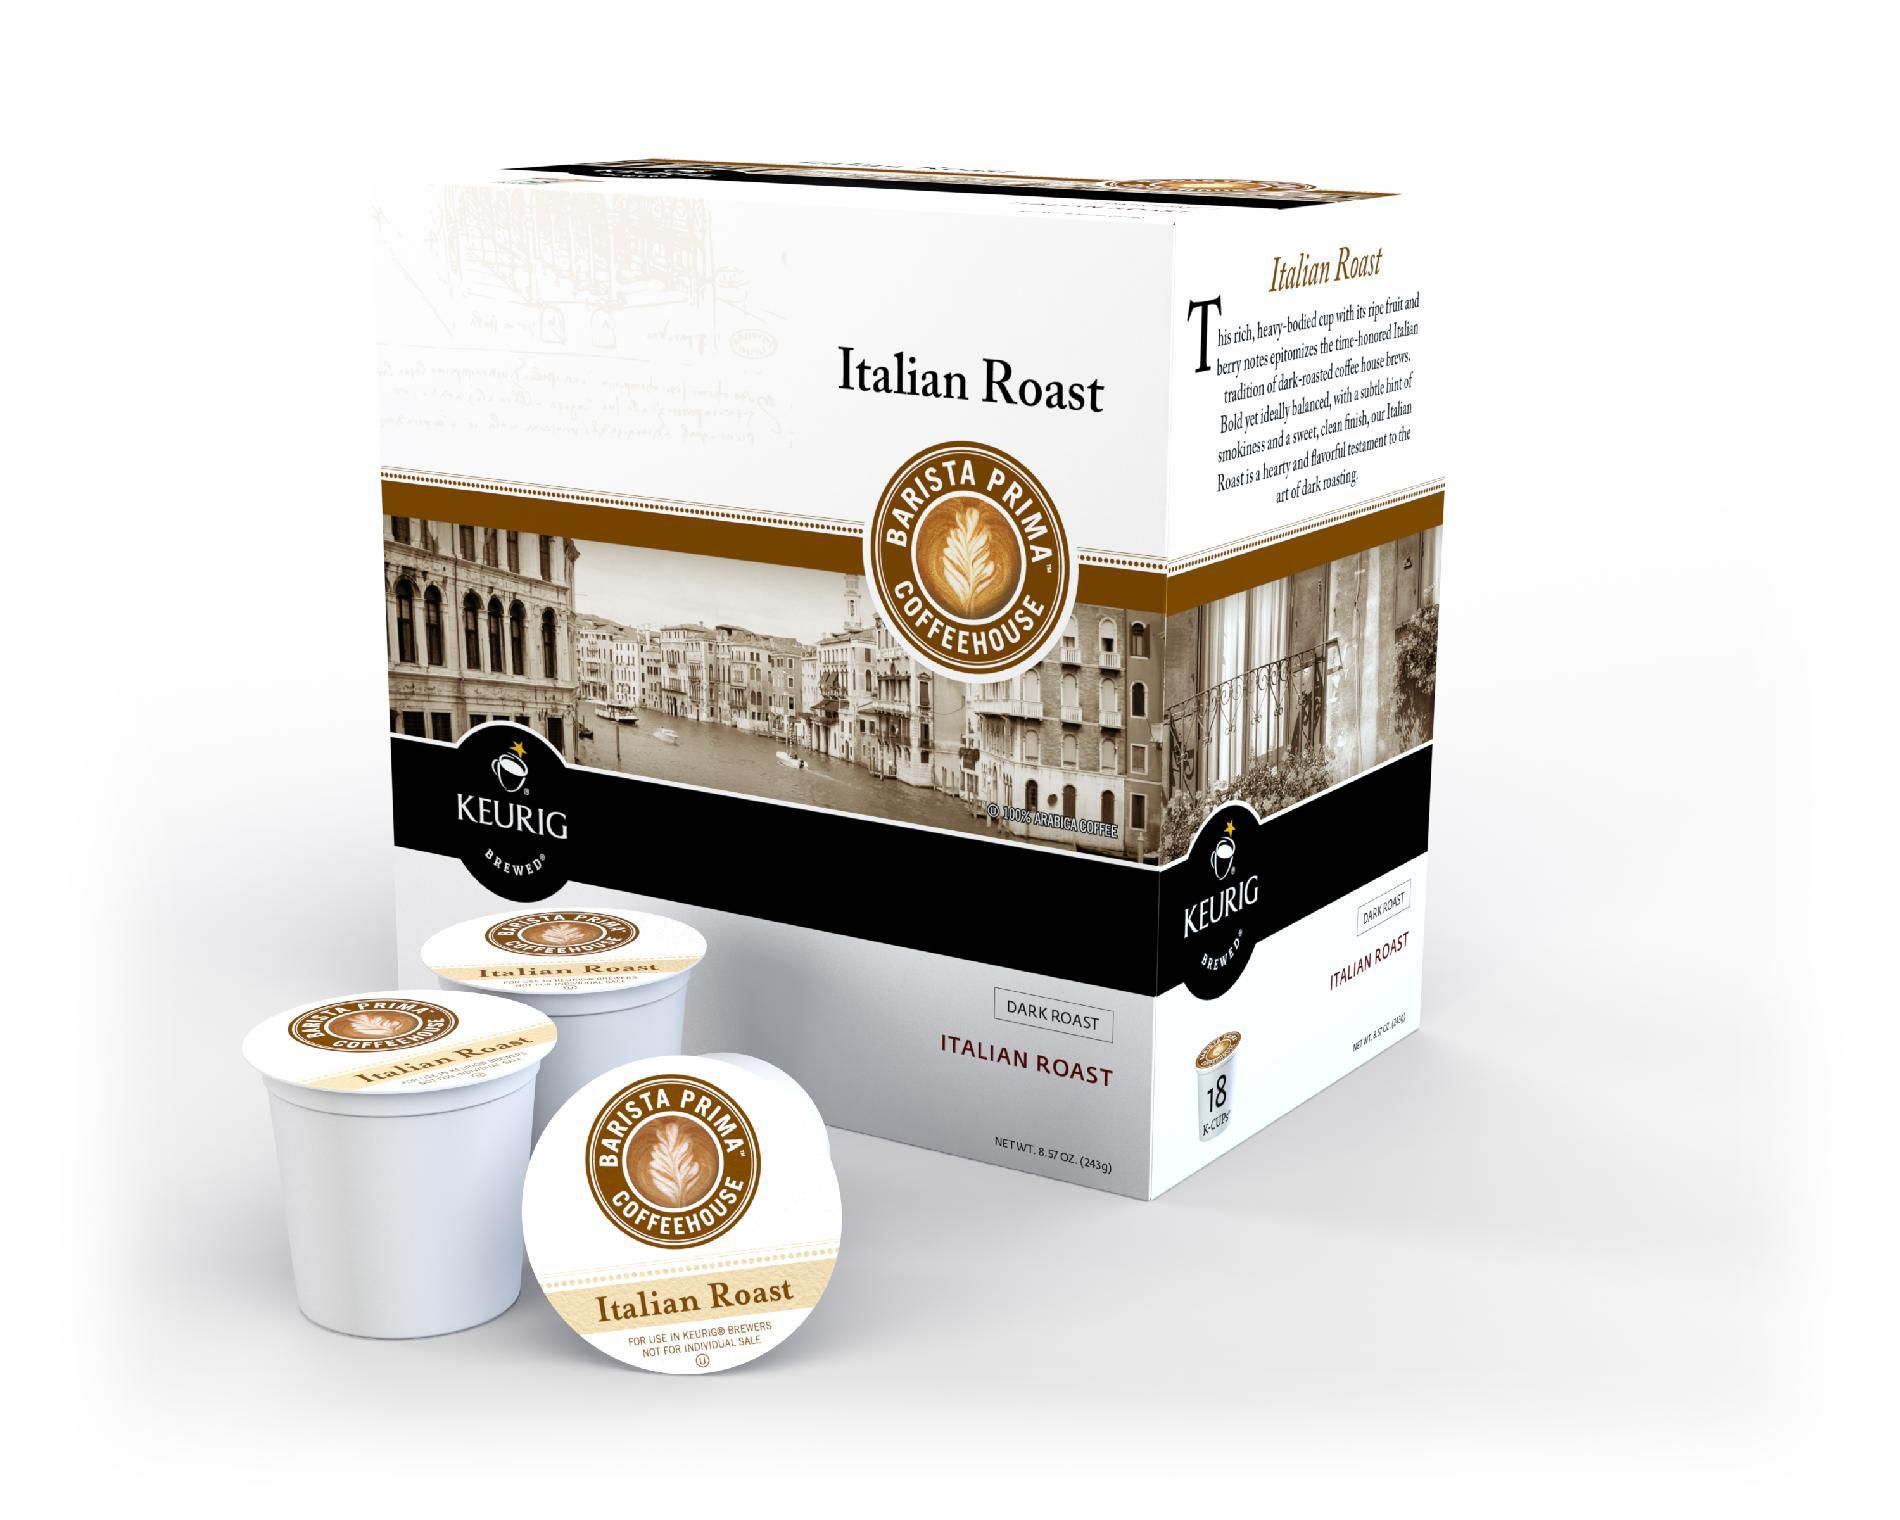 Italian Blend Coffee For Keurig K-Cup Brewing Systems, 108-pk